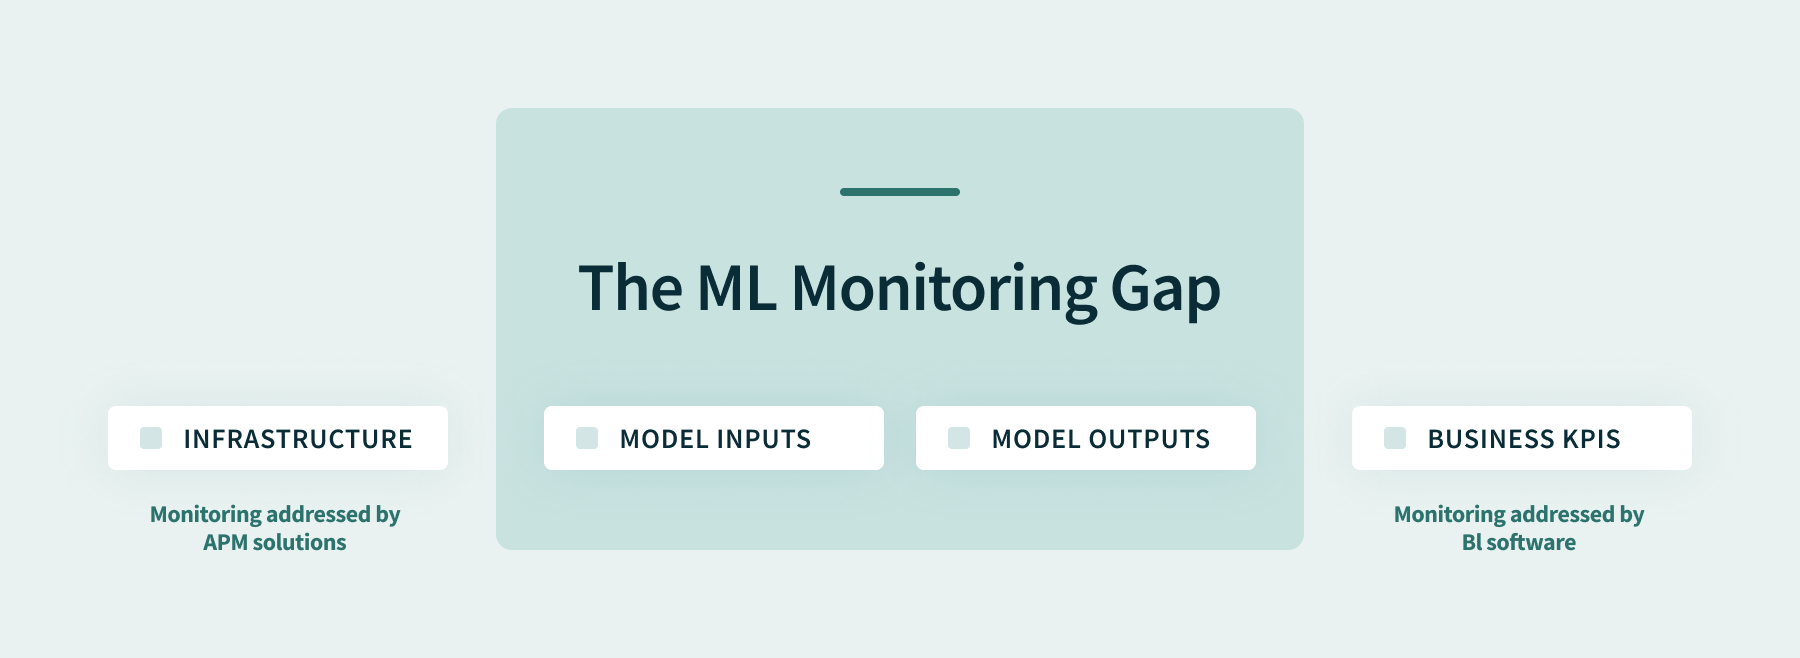 The Machine Learning Monitoring Gap